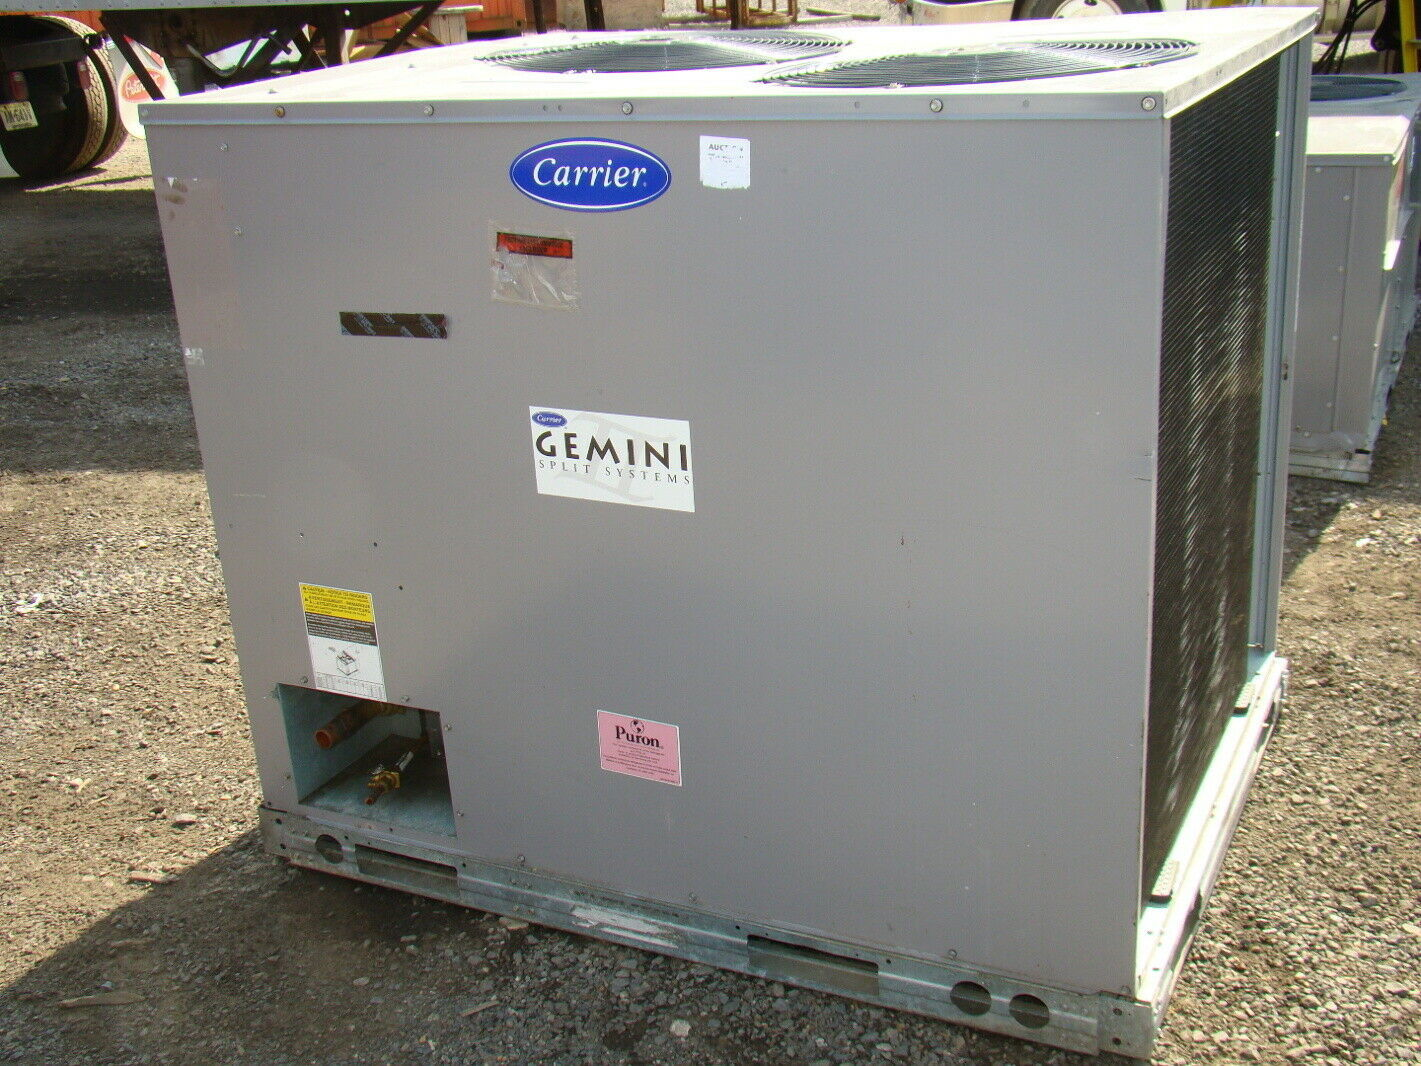 #5C4536 Carrier R 410A Puron Air Conditioning Unit EBay Highly Rated 11329 Carrier Air Conditioner Units wallpapers with 1421x1066 px on helpvideos.info - Air Conditioners, Air Coolers and more